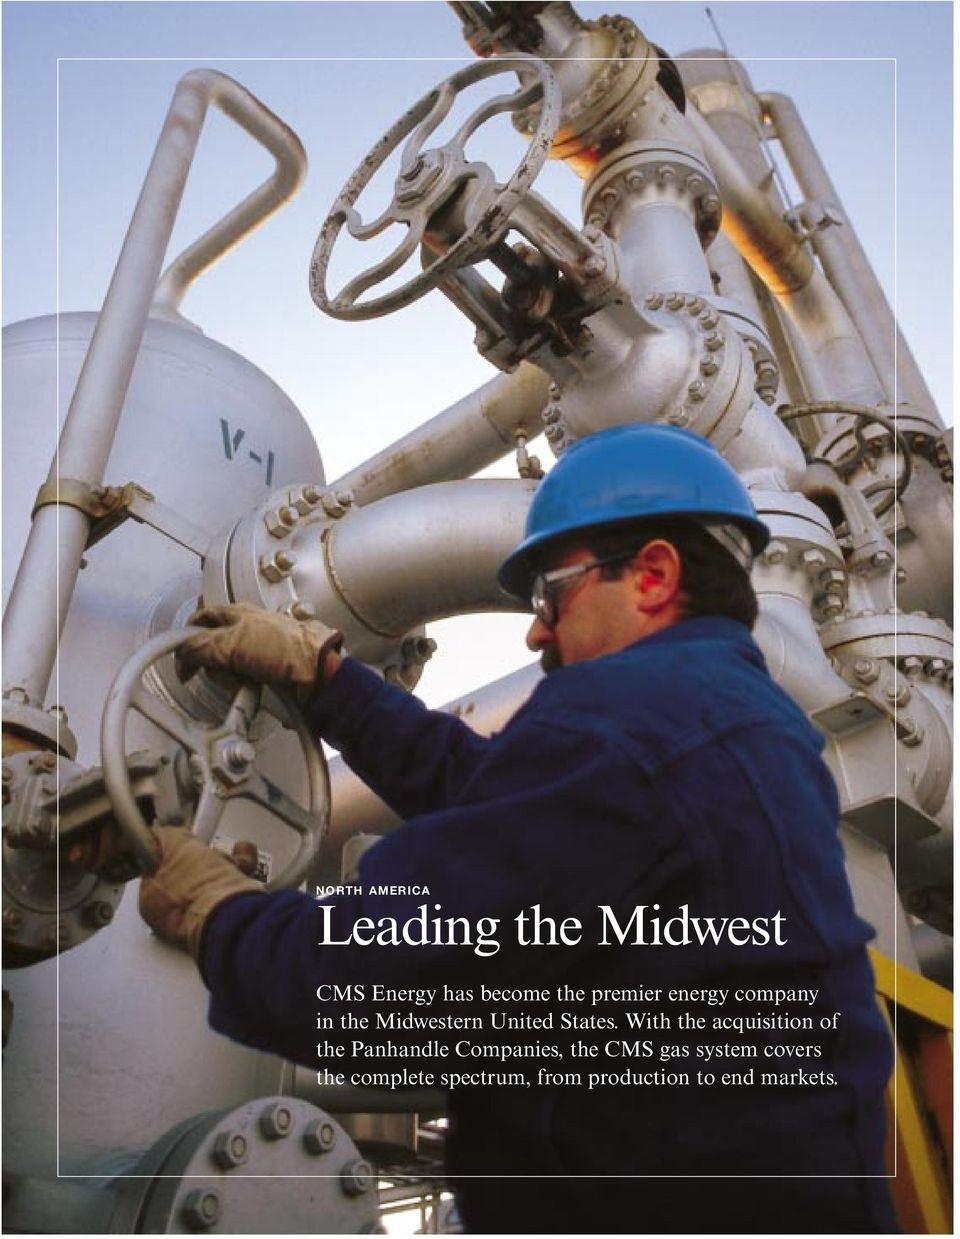 With the acquisition of the Panhandle Companies, the CMS gas system